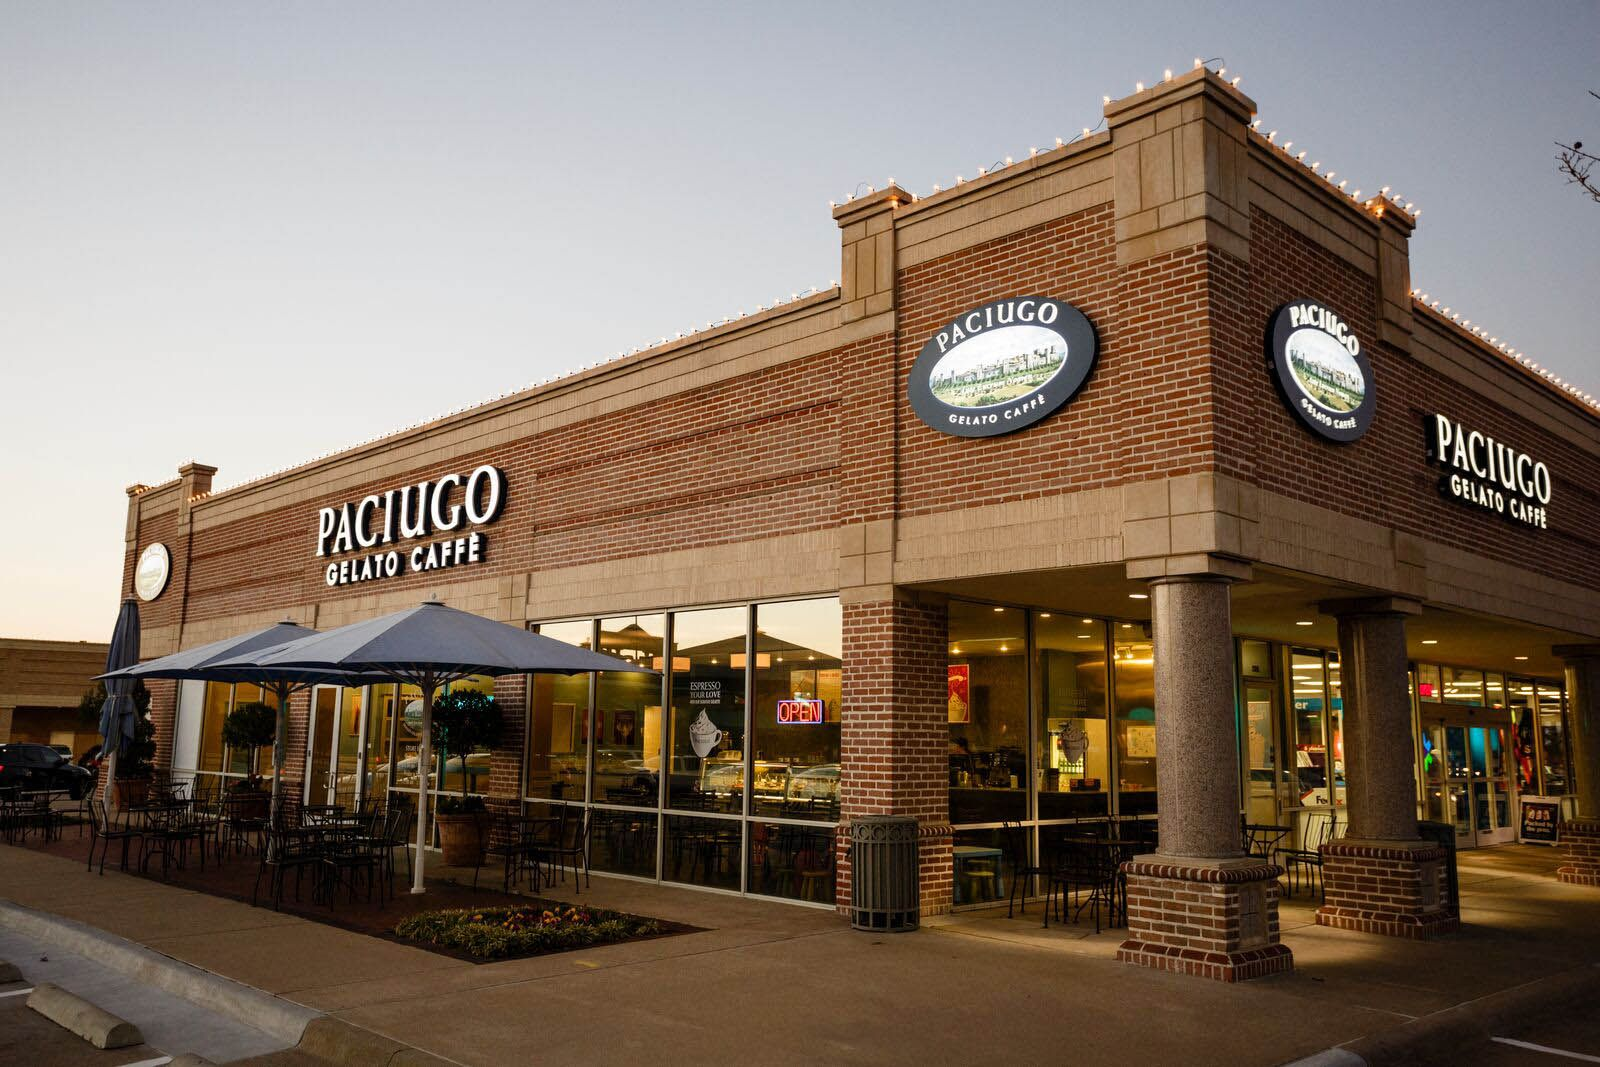 Paciugo Gelato Caffe Acquired by Dallas-based Sinelli Concepts International